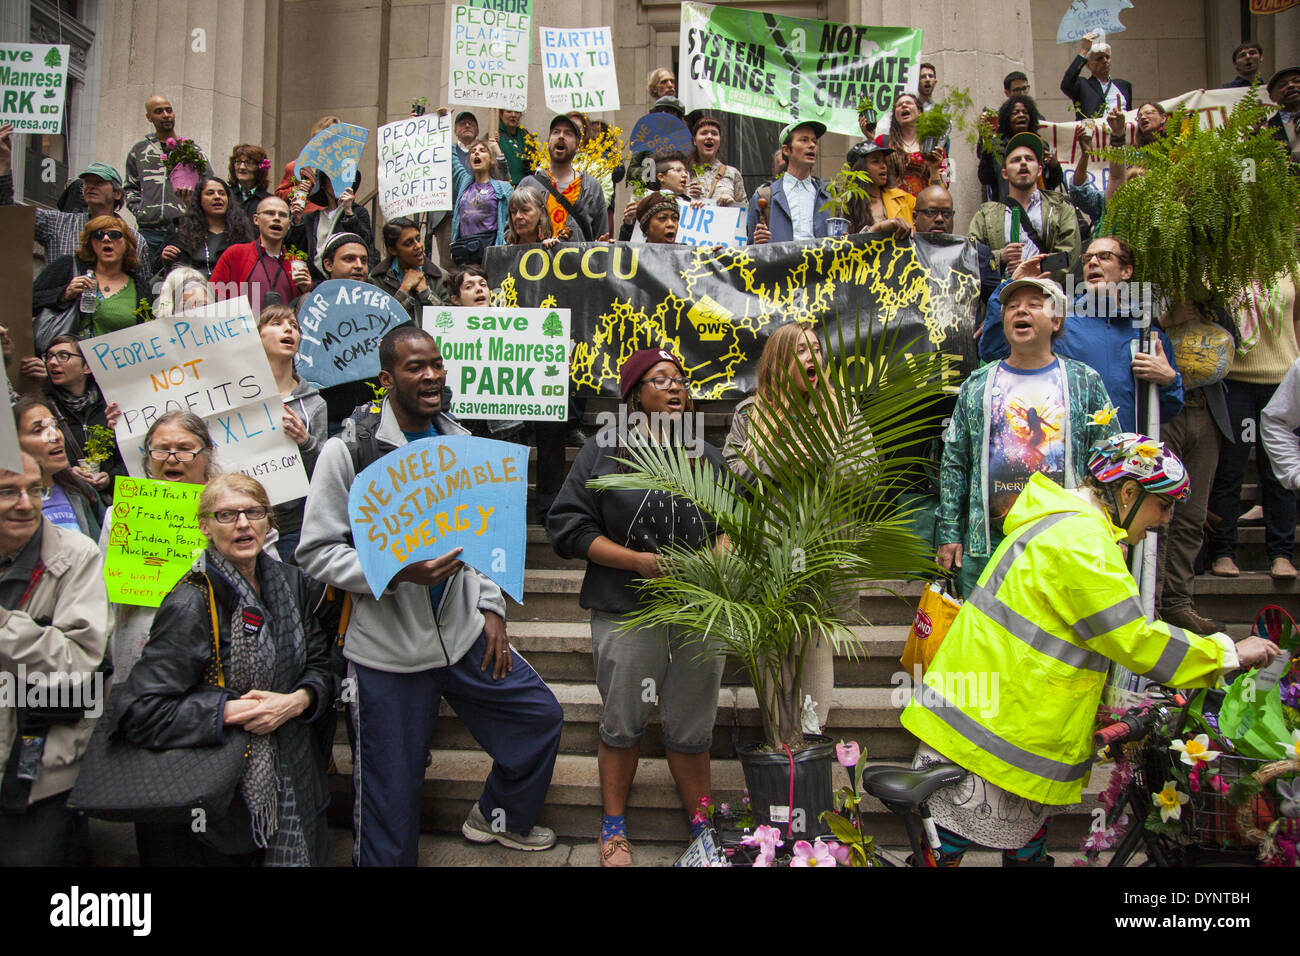 New York, NY, USA , 22nd Apr, 2014. Environmental activists rally on Earth Day at Zuccotti Park, then march to Wall - Stock Image